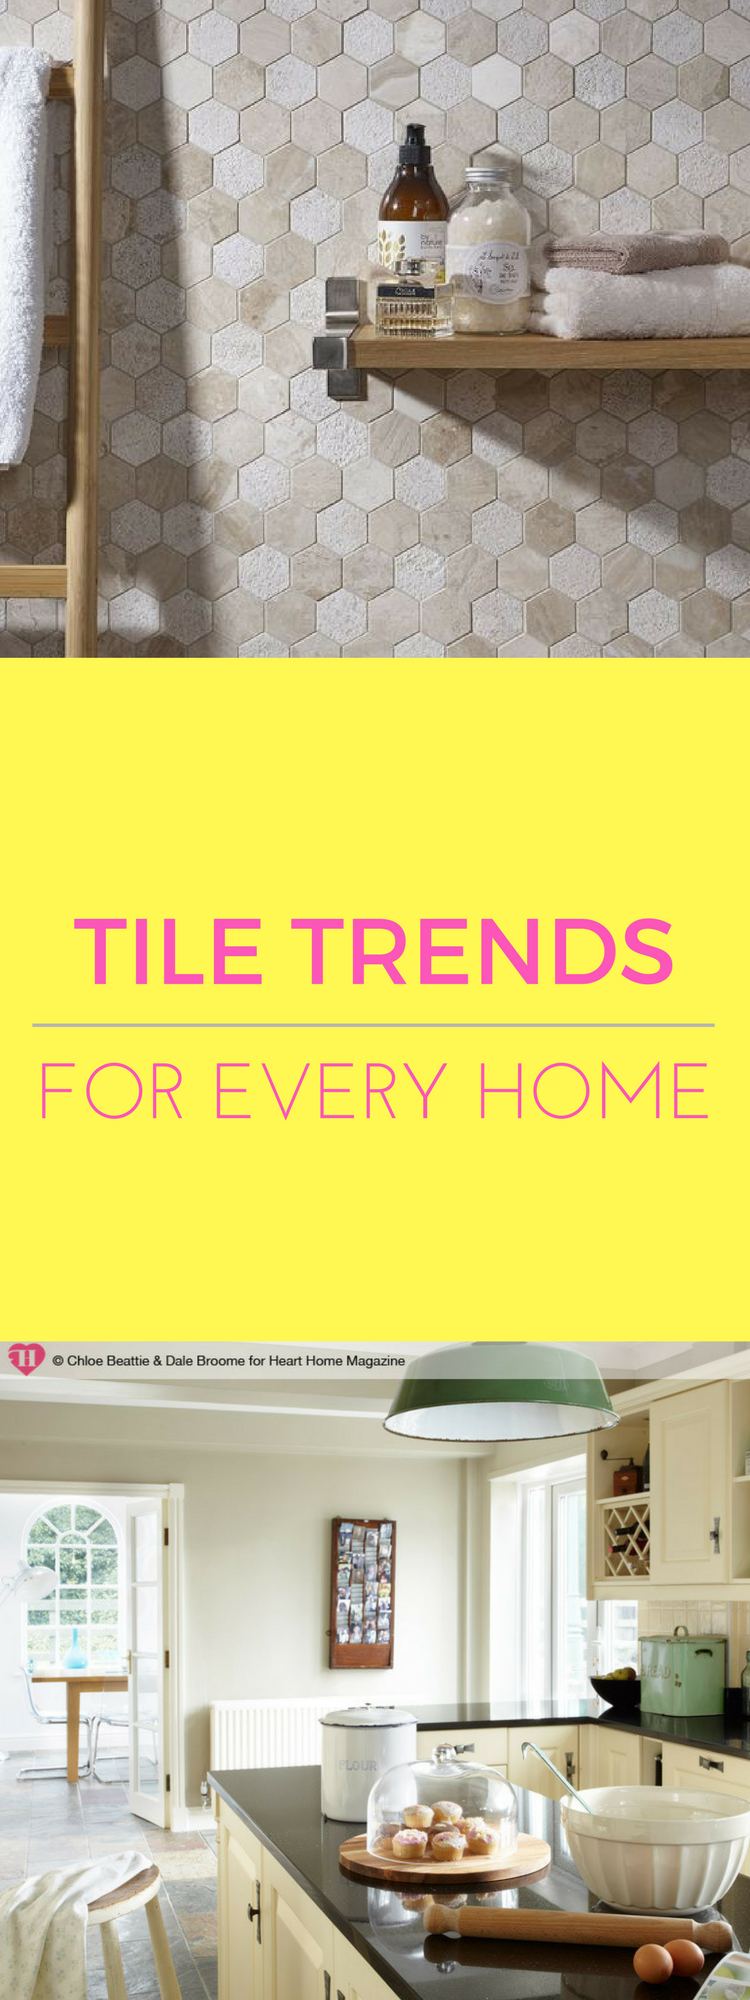 the 3 top tile trends for gracing our homes kitchens and bathrooms have